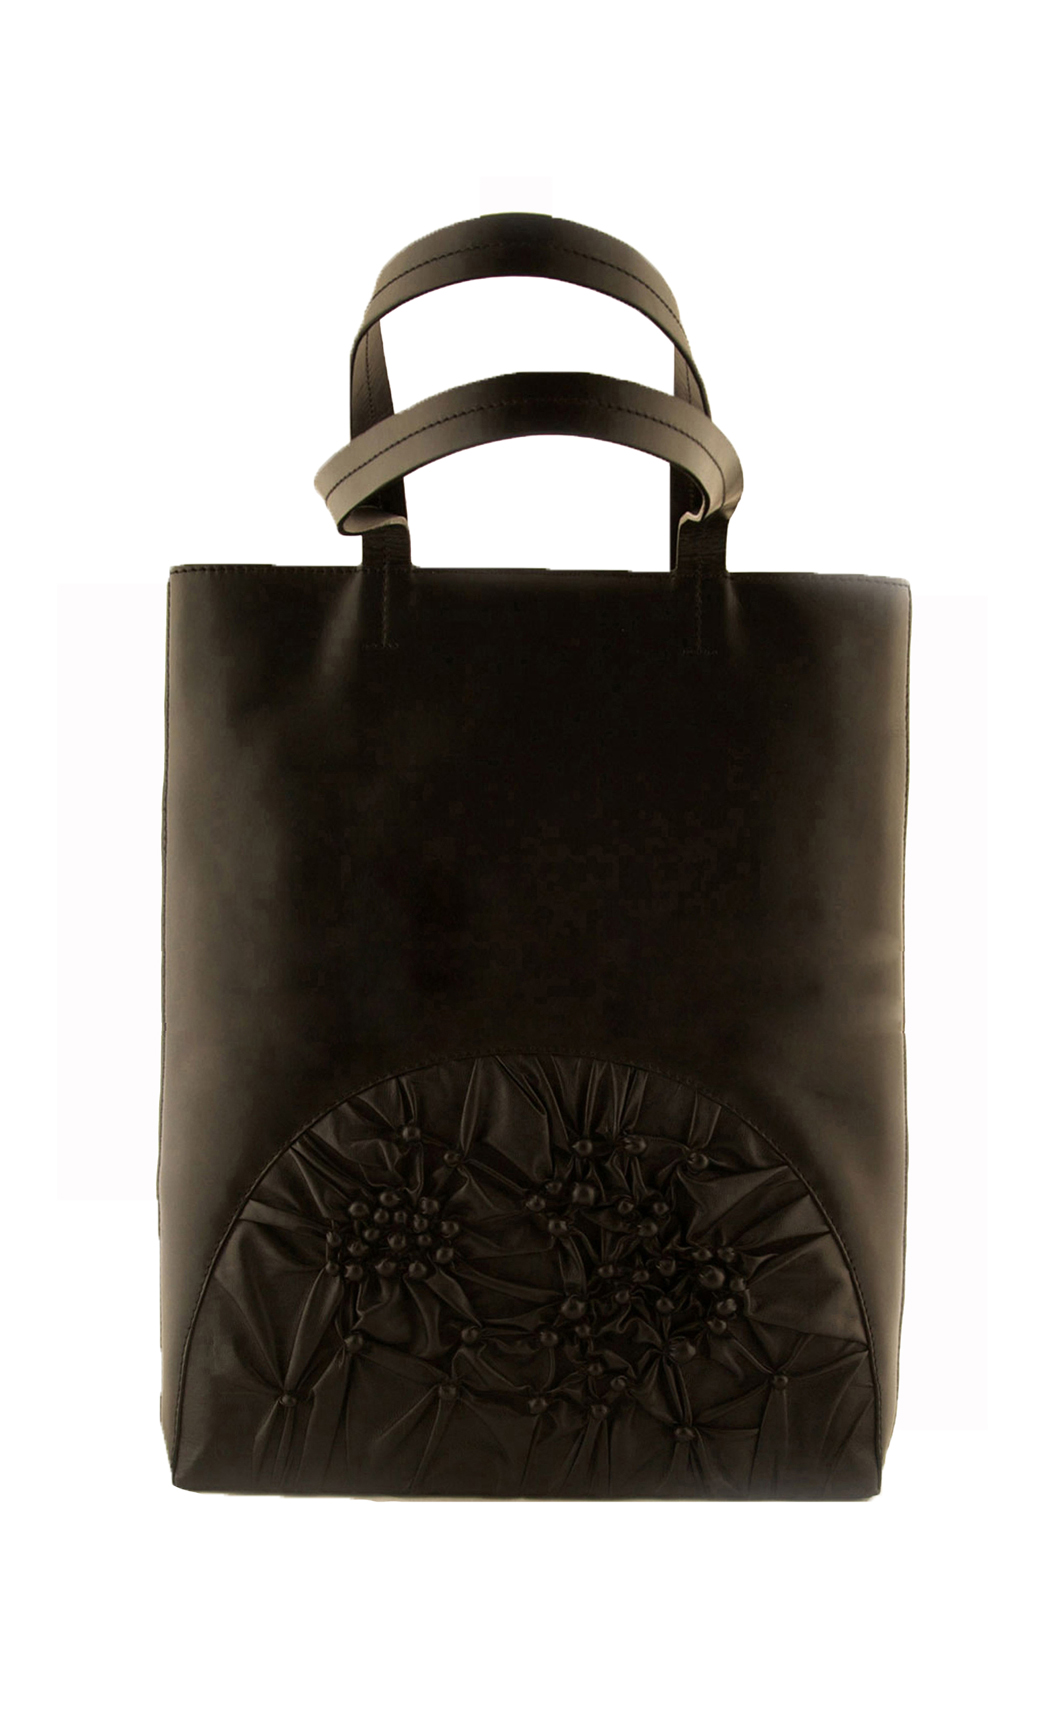 Bubbling Over Tote in Black. Buy Online